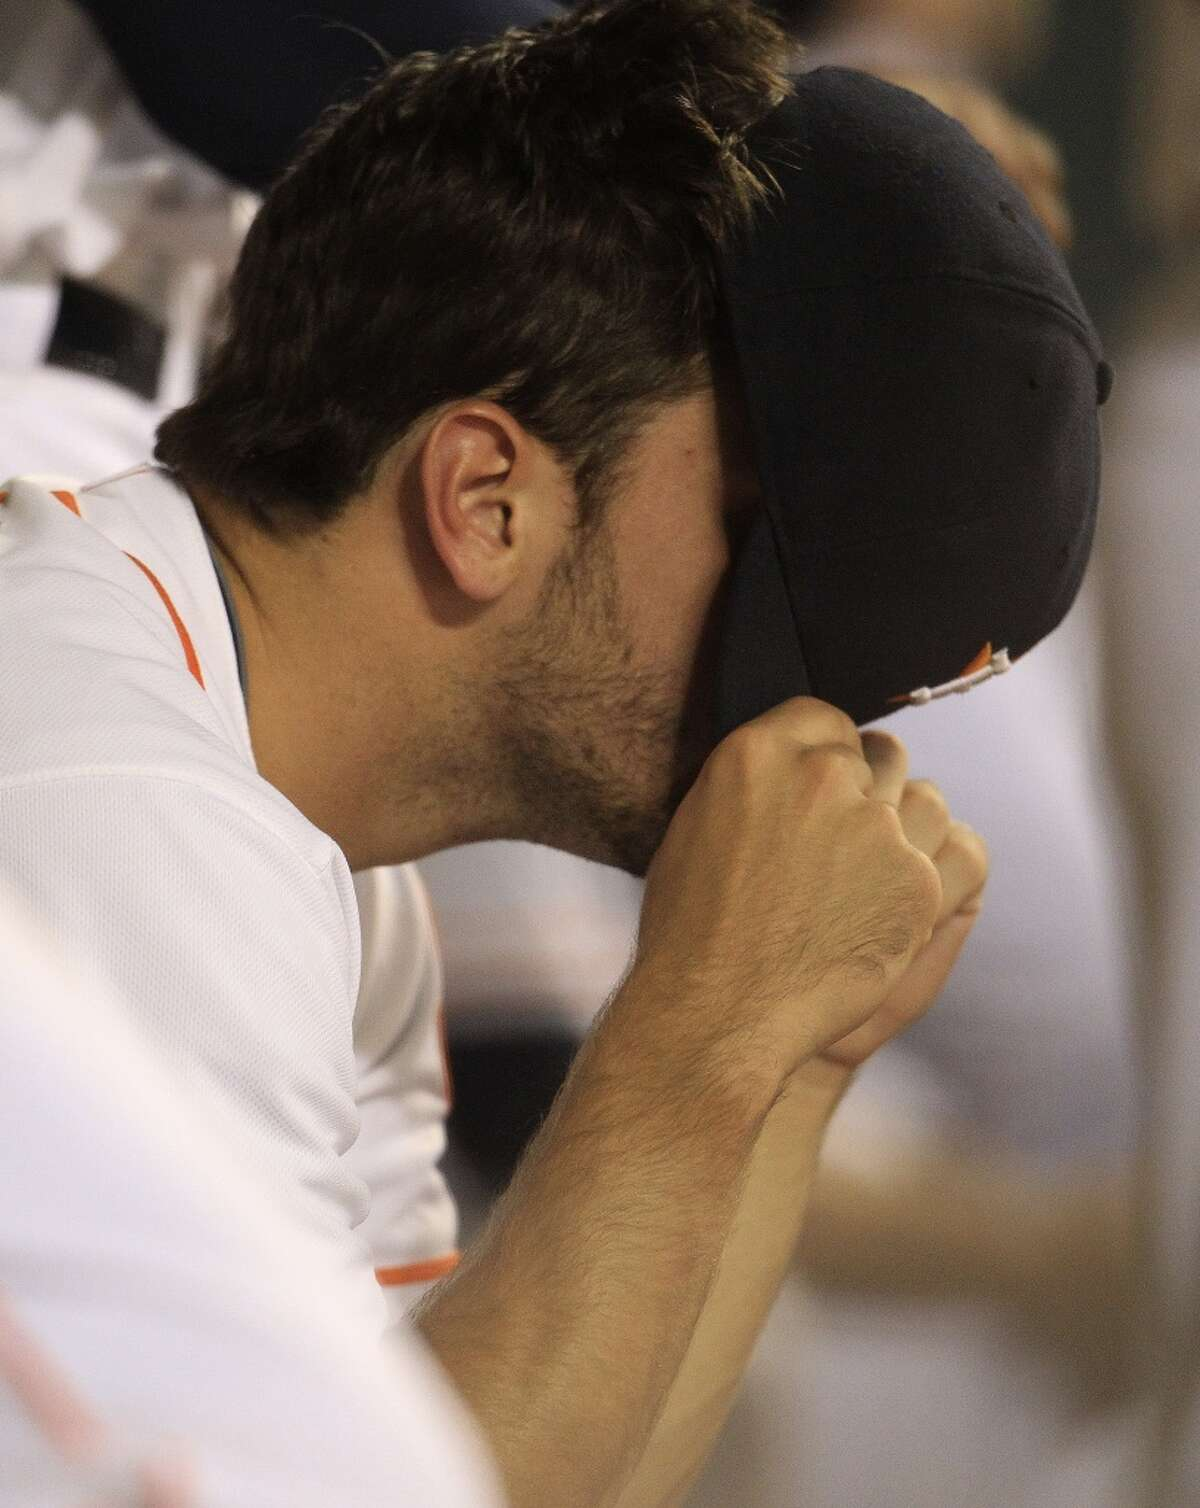 Sept: 29: Yankees 5, Astros 1 (14 innings) Jarred Cosart couldn't bear to watch as the worst season in Astros' history came to an excruciating end in extra innings.